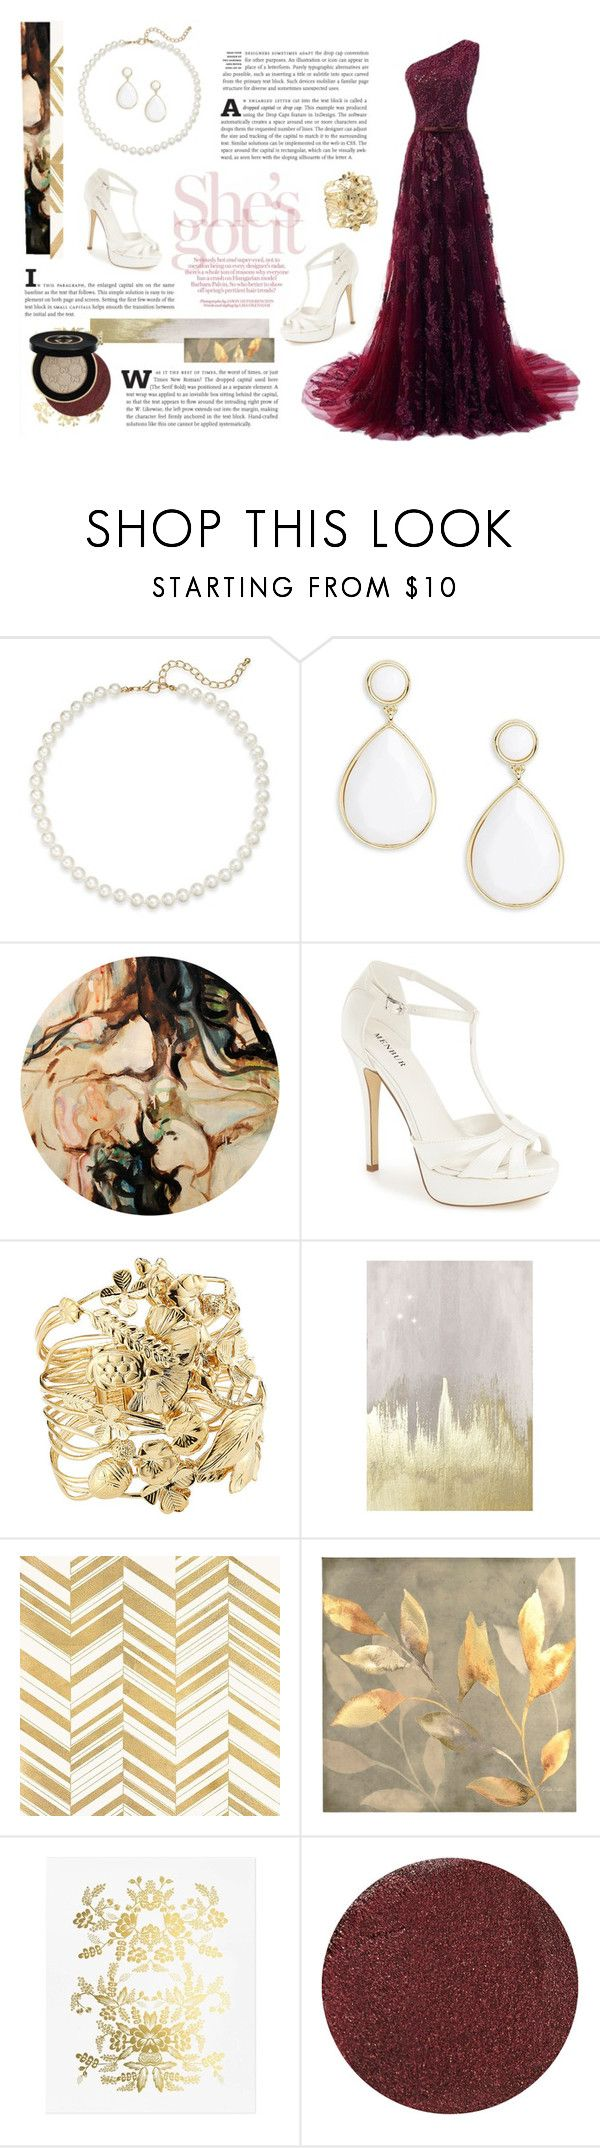 """""""fever"""" by imaginativedeath ❤ liked on Polyvore featuring Saks Fifth Avenue, Trina Turk, Menbur, Aurélie Bidermann, Oliver Gal Artist Co., Home Decorators Collection, Rifle Paper Co, AERIN and Gucci"""